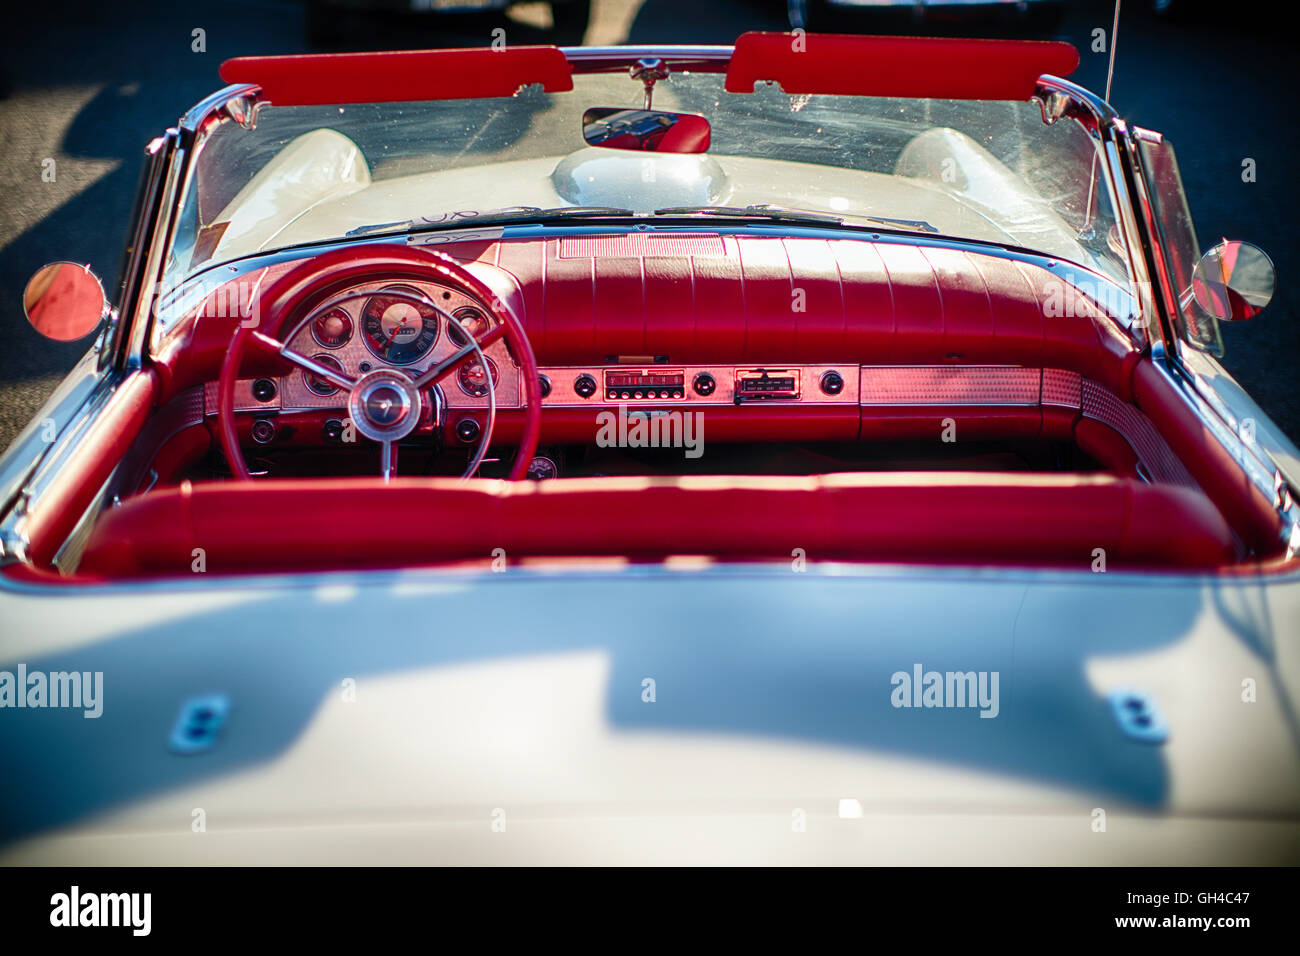 High Angle View of a 1957 Ford Thunderbird Convertible Interior - Stock Image